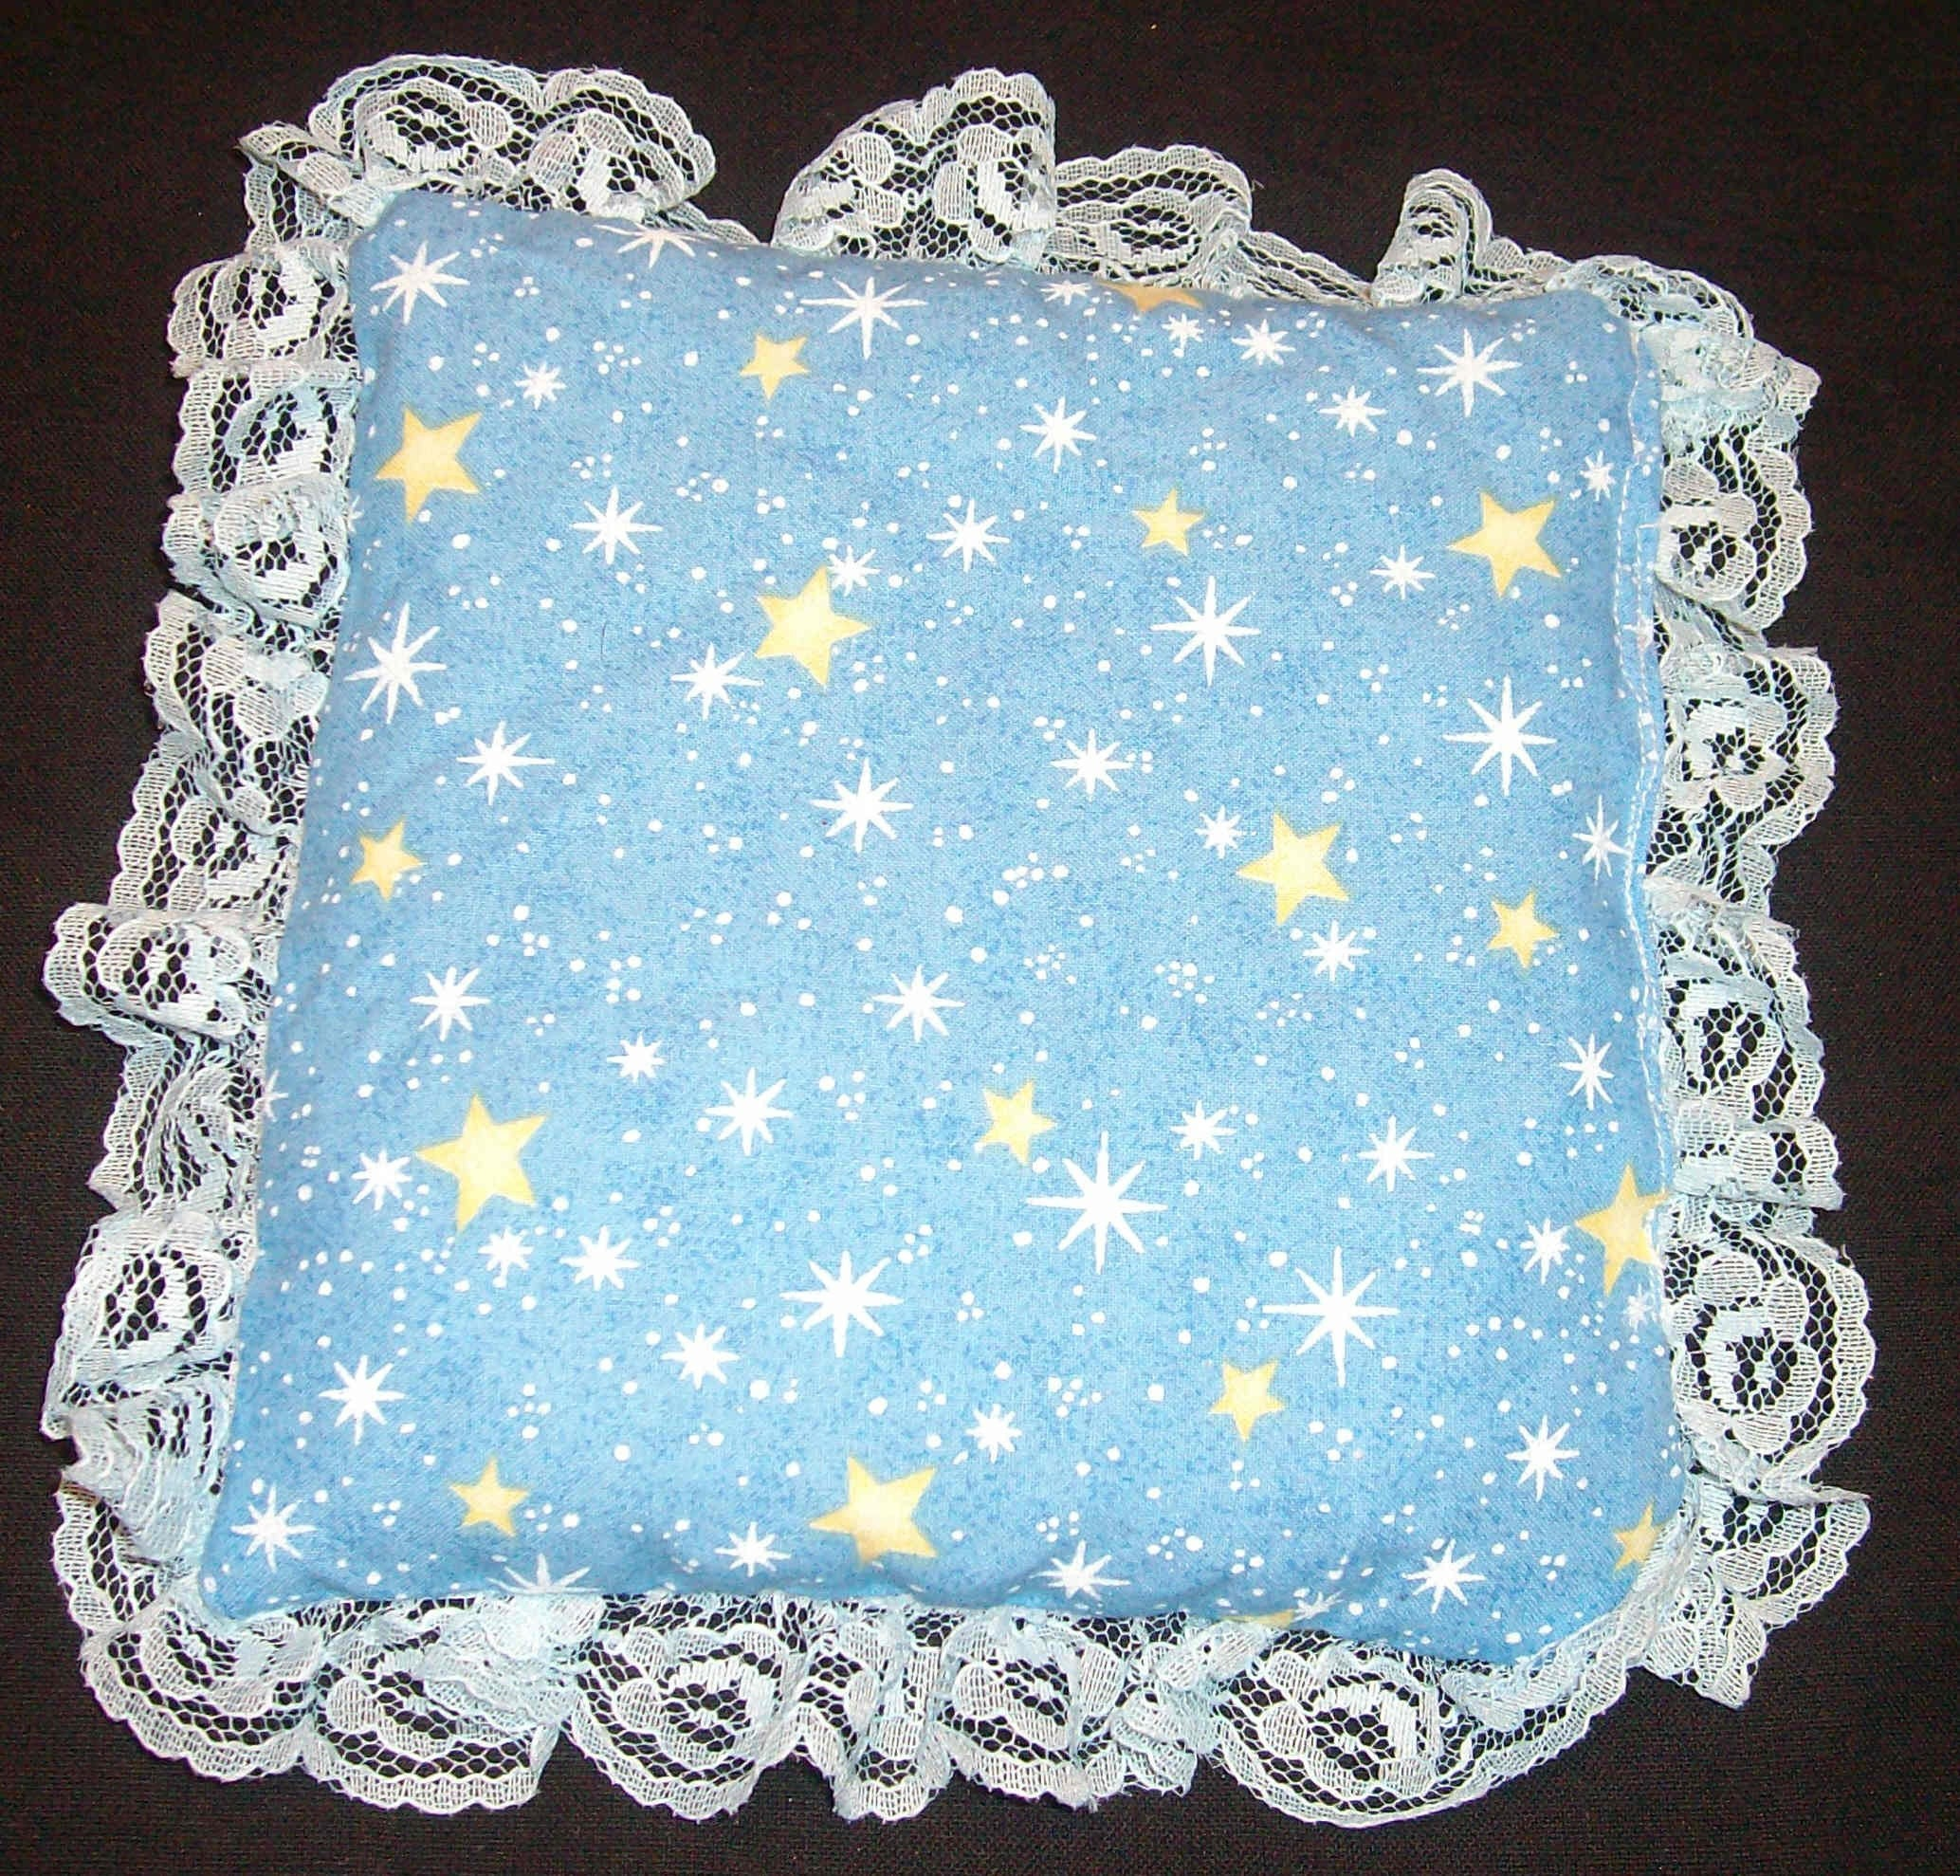 Herbal dream pillow blue with stars eye pillow herbal treatment